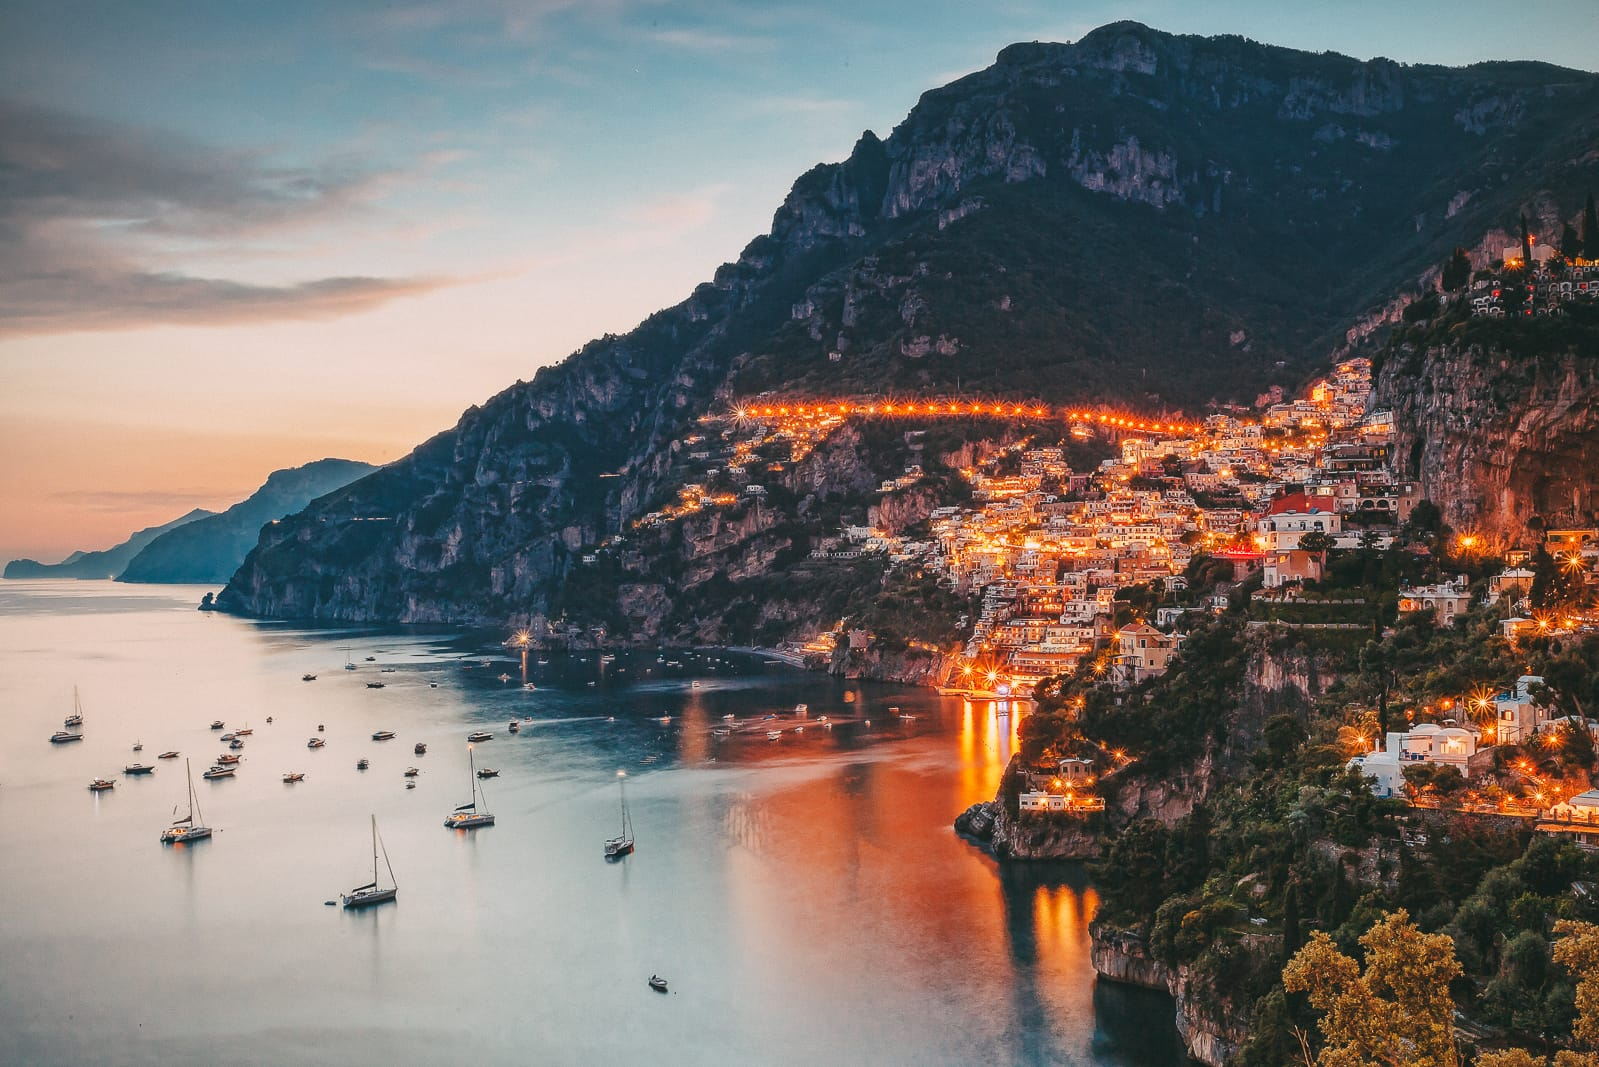 12 Beautiful Places In The Amalfi Coast Of Italy That You Have To Visit (8)